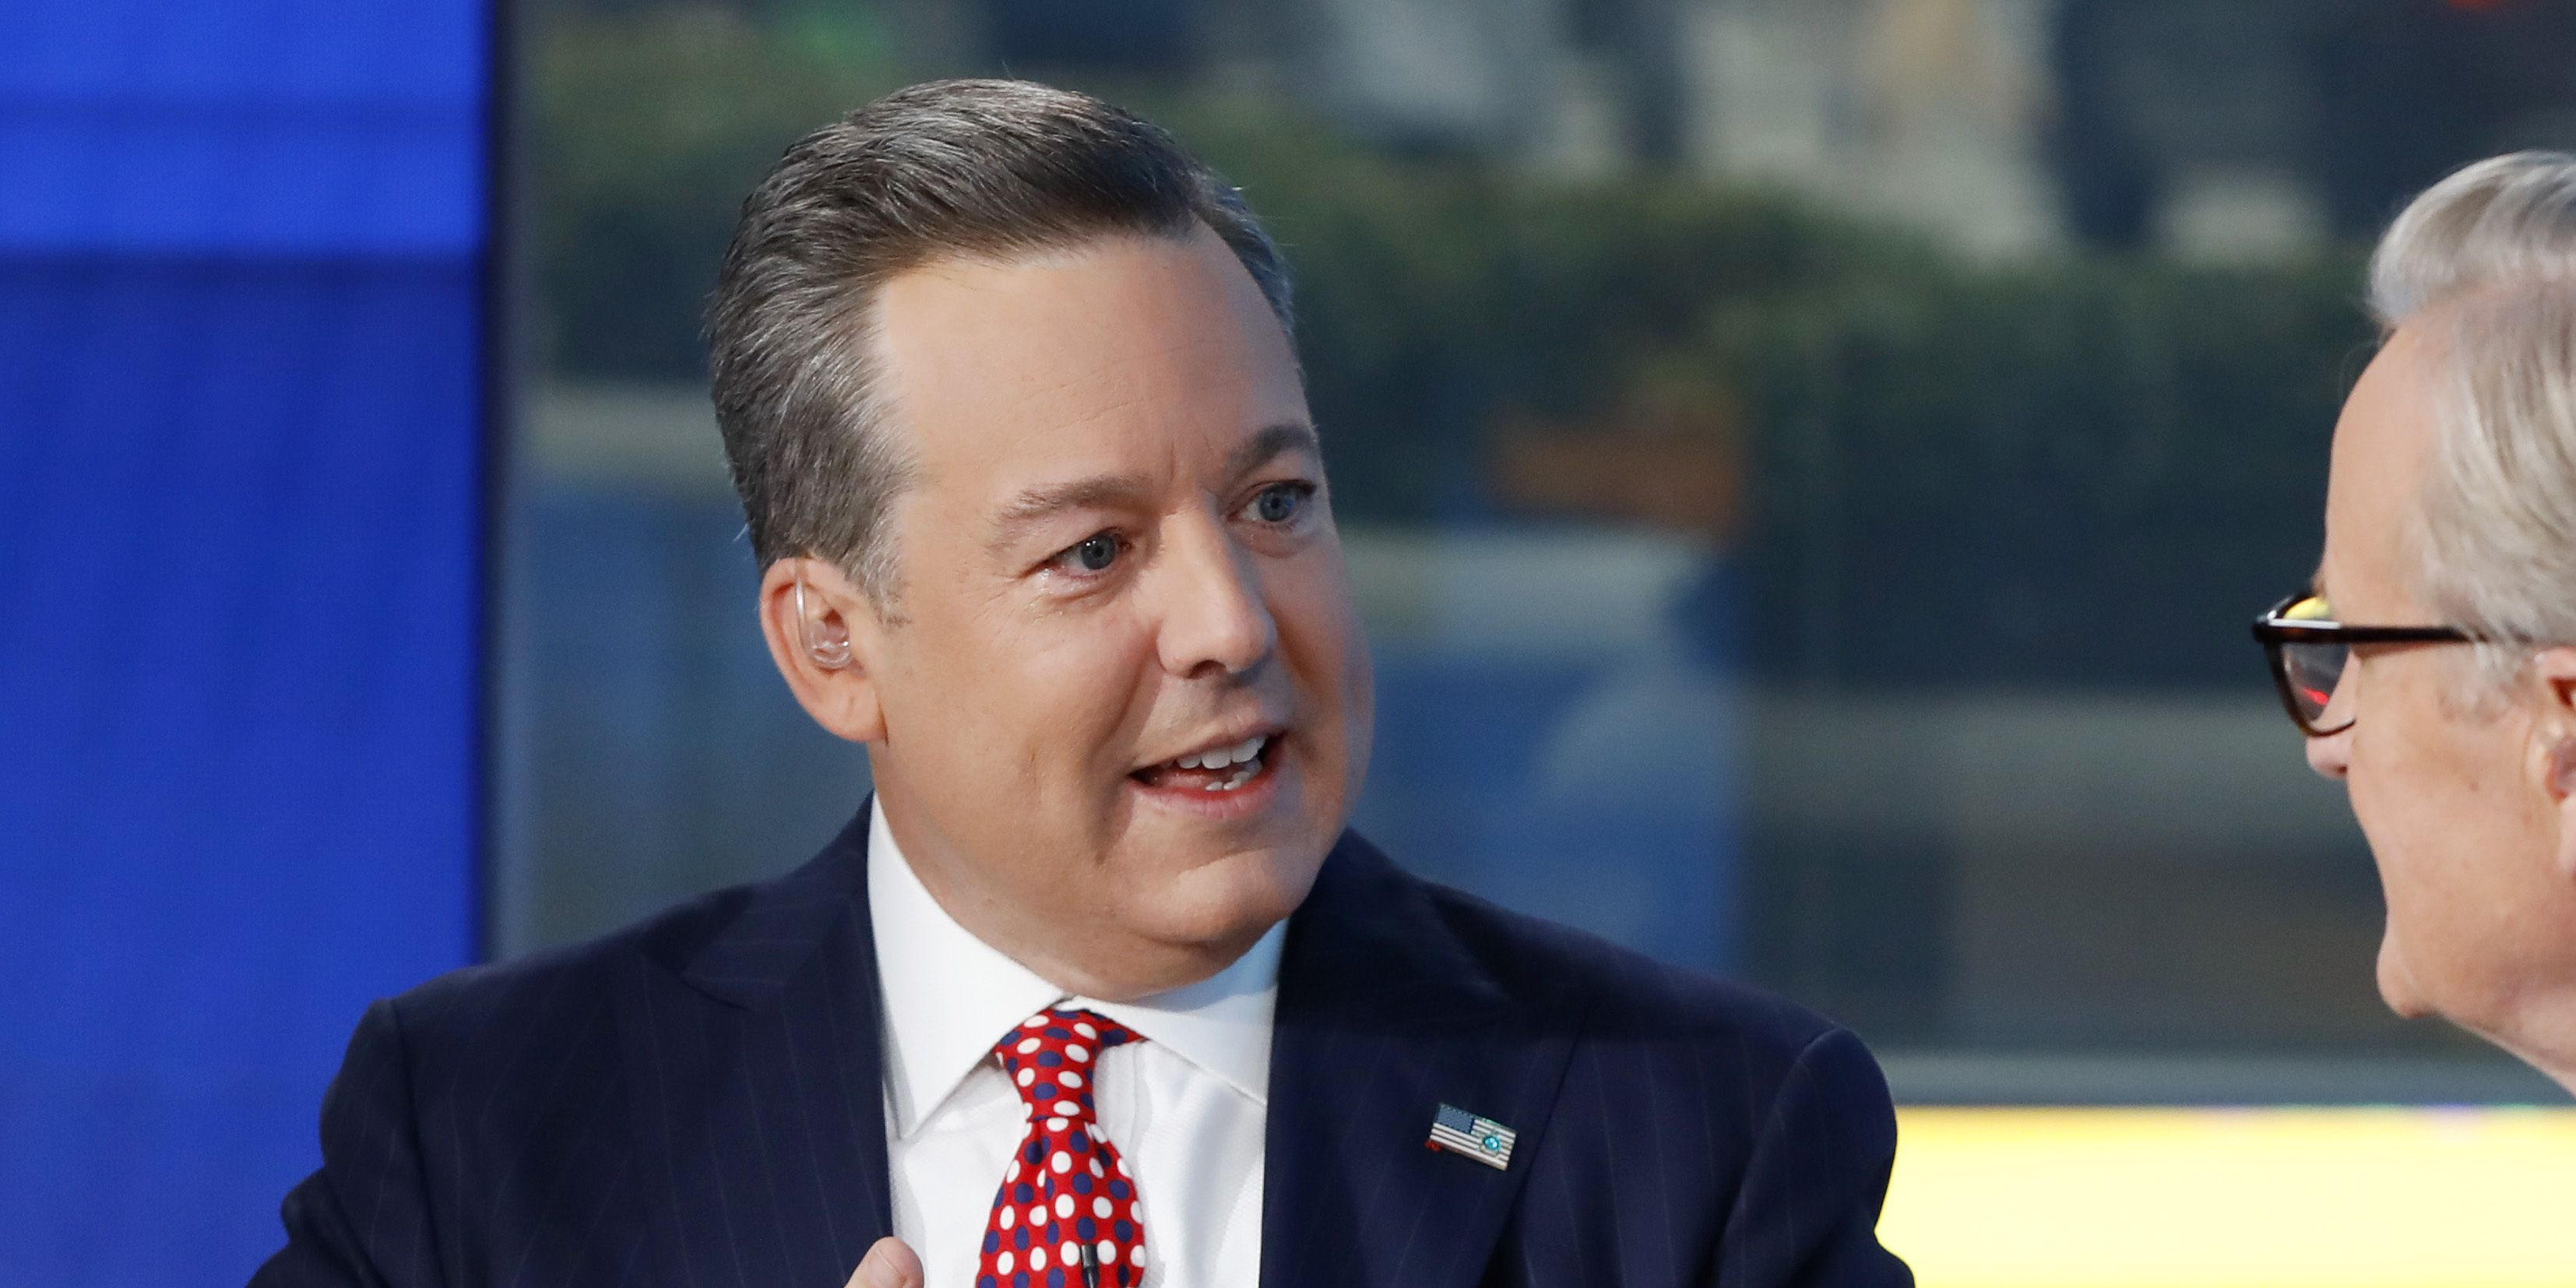 Fox News' Ed Henry fired after sexual misconduct allegation